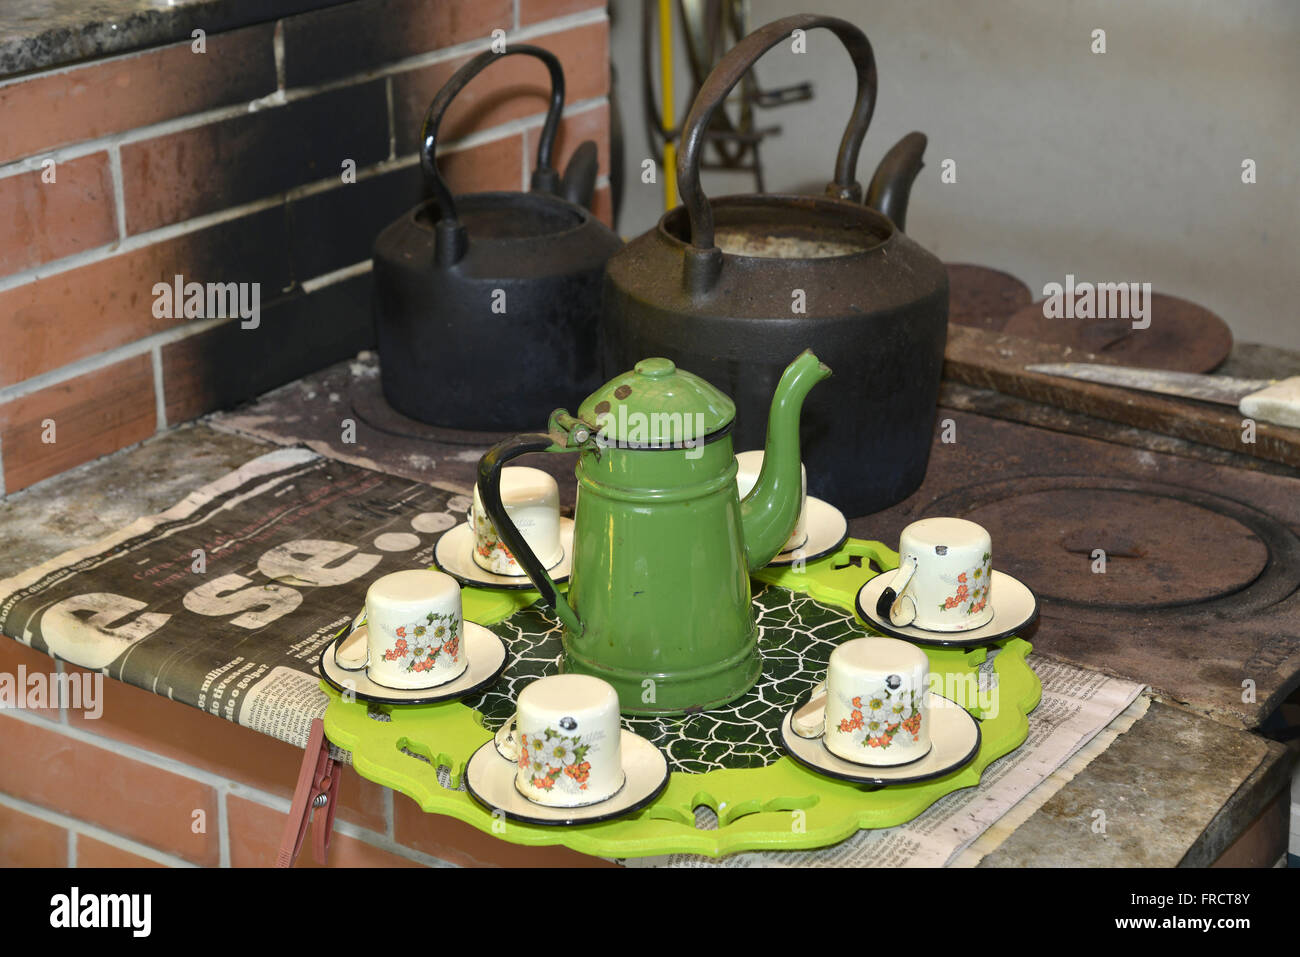 Teapot and cups of coffee on the wood stove in the countryside - Stock Image